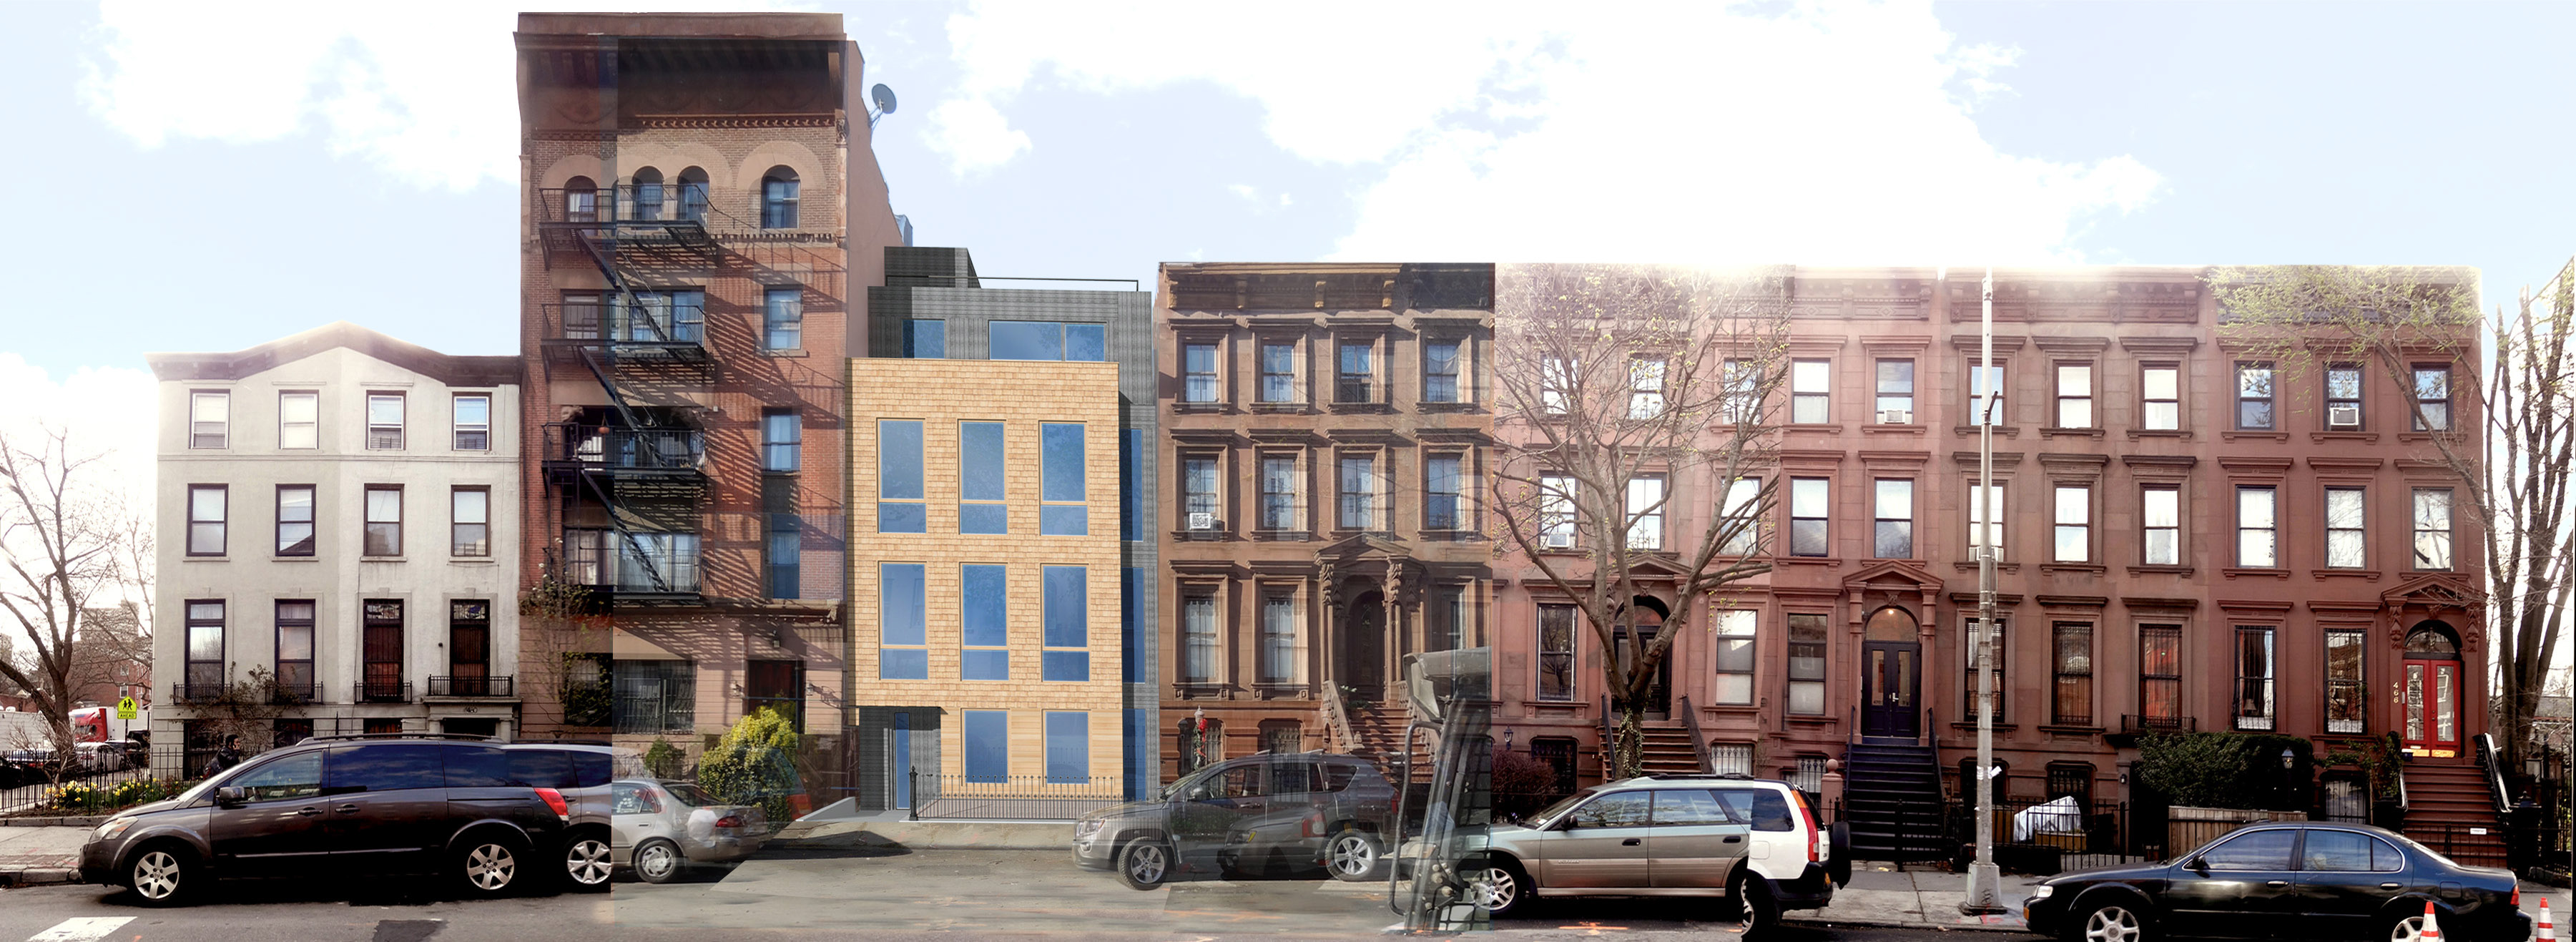 Previous proposal for 476 Washington Avenue